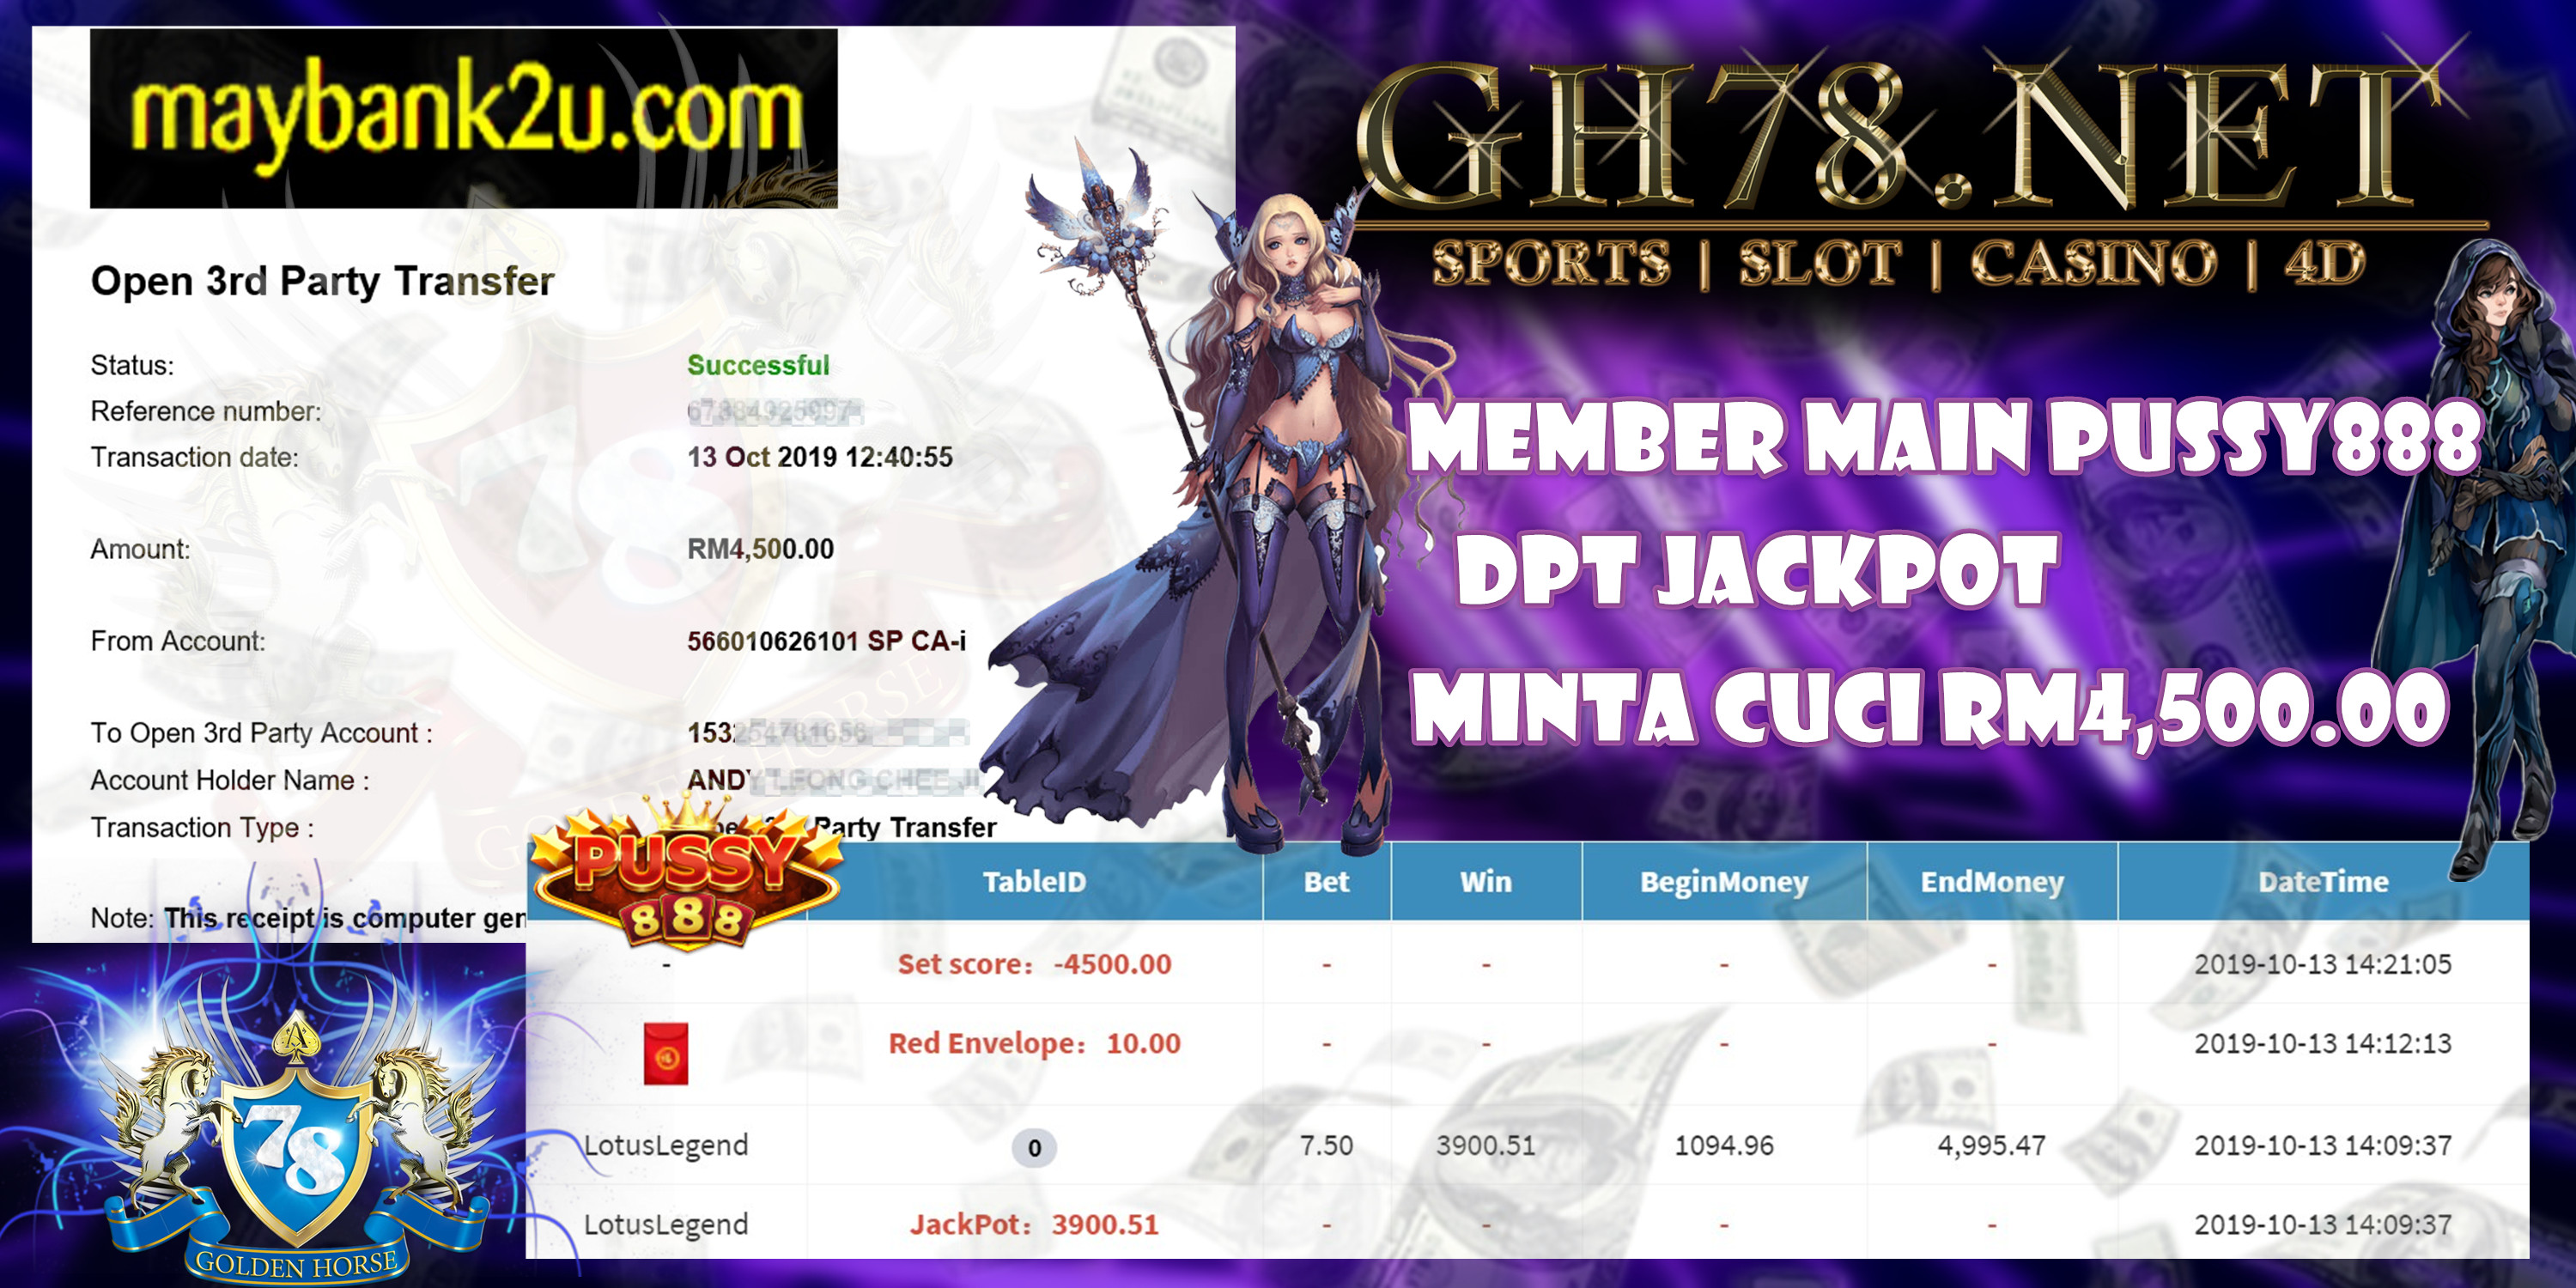 MEMBER MAIN GAME PUSSY888 MINTA OUT RM4,500